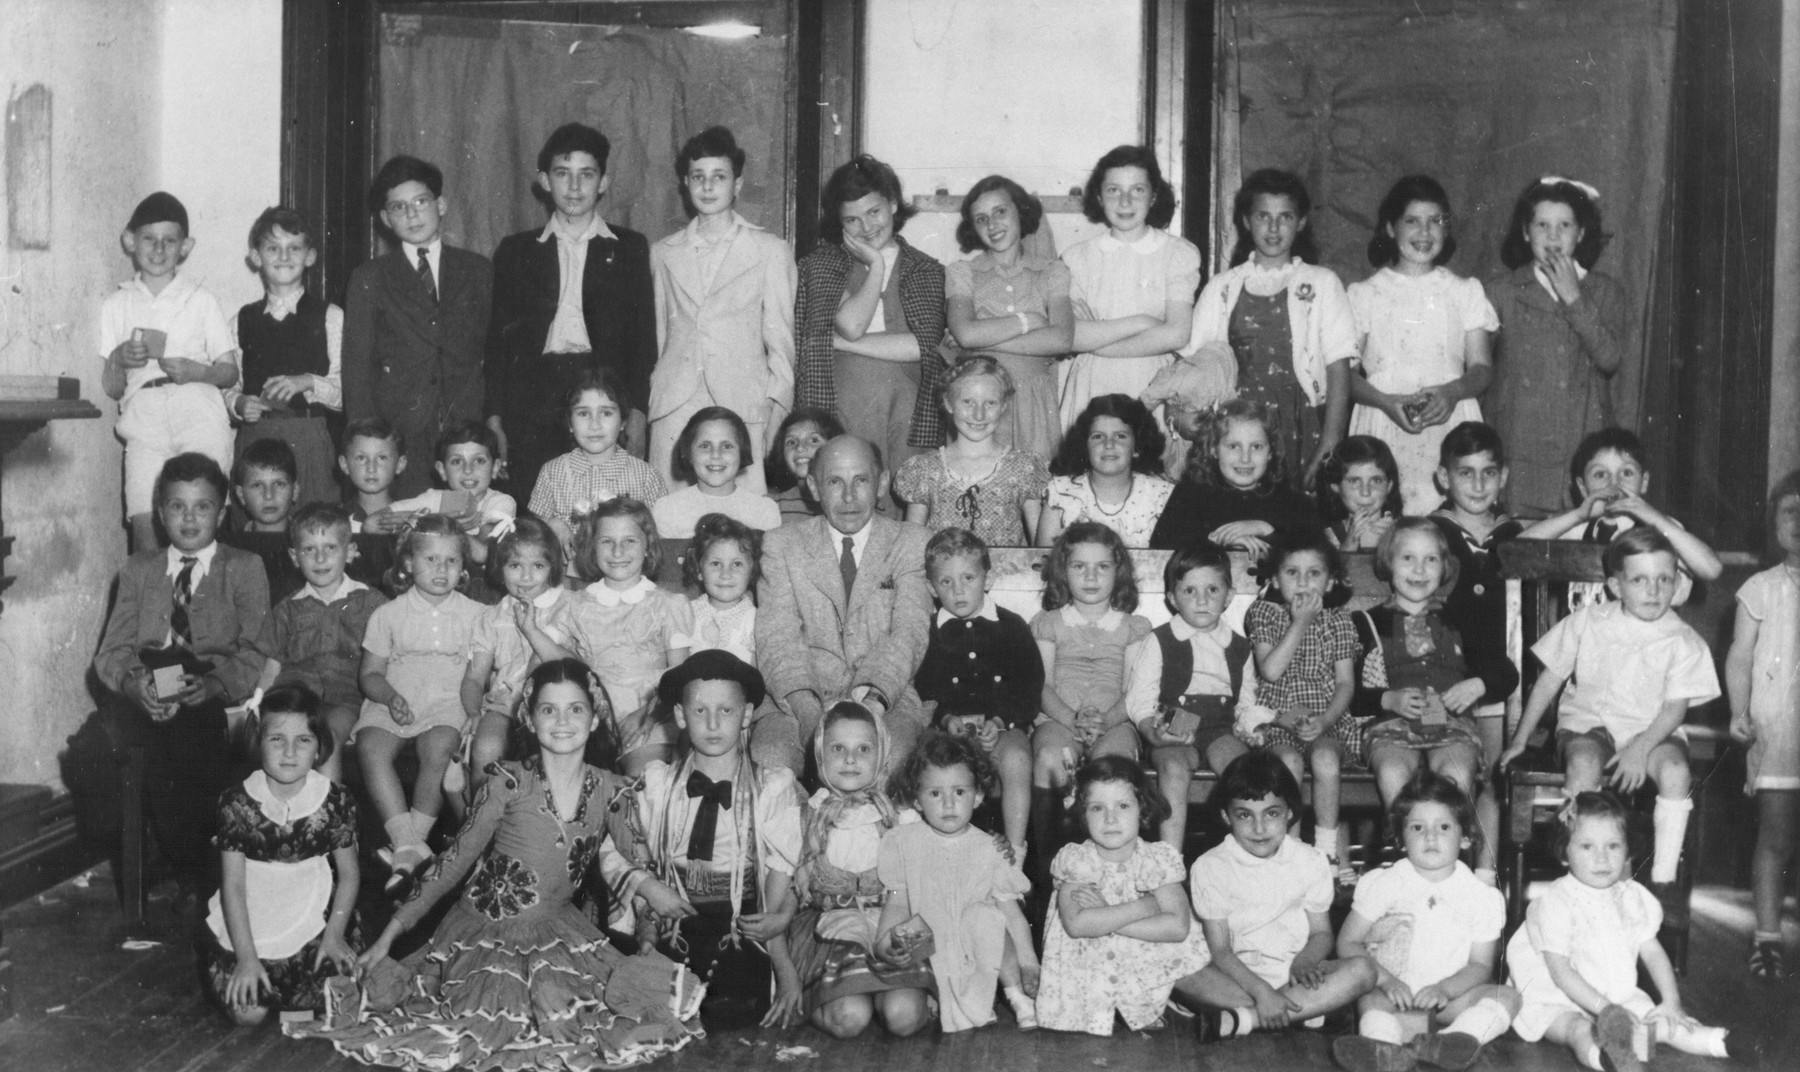 Group portrait of children, some of whom are in costume, in Shanghai.  Those pictured in the front row include Elisabeth Gauglberger (far left), Liane Poutau (second from left) and Sonja Krips (sixth from left).